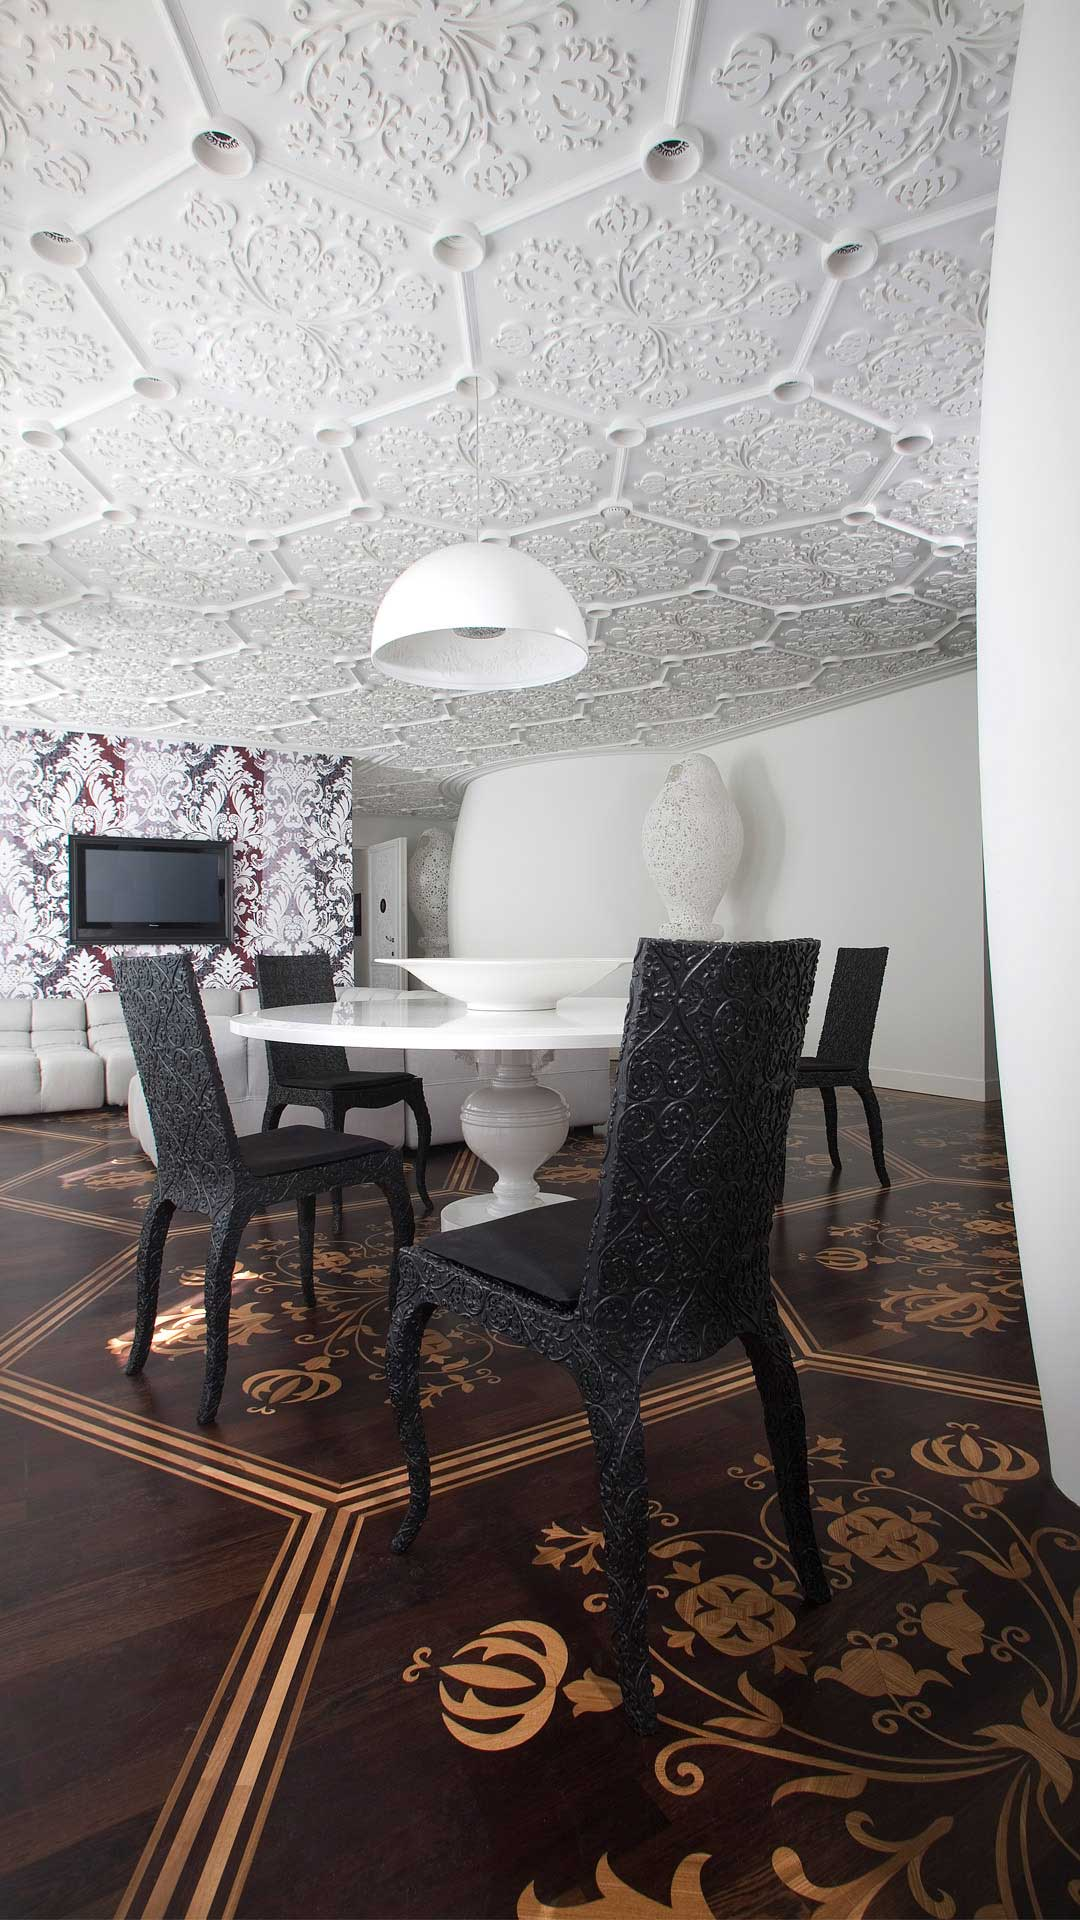 marcel wanders Luxurious Dining Room Ideas By Top Interior Designer Marcel Wanders 2 Luxurious Dining Room Ideas By Top Interior Designer Marcel Wanders 3